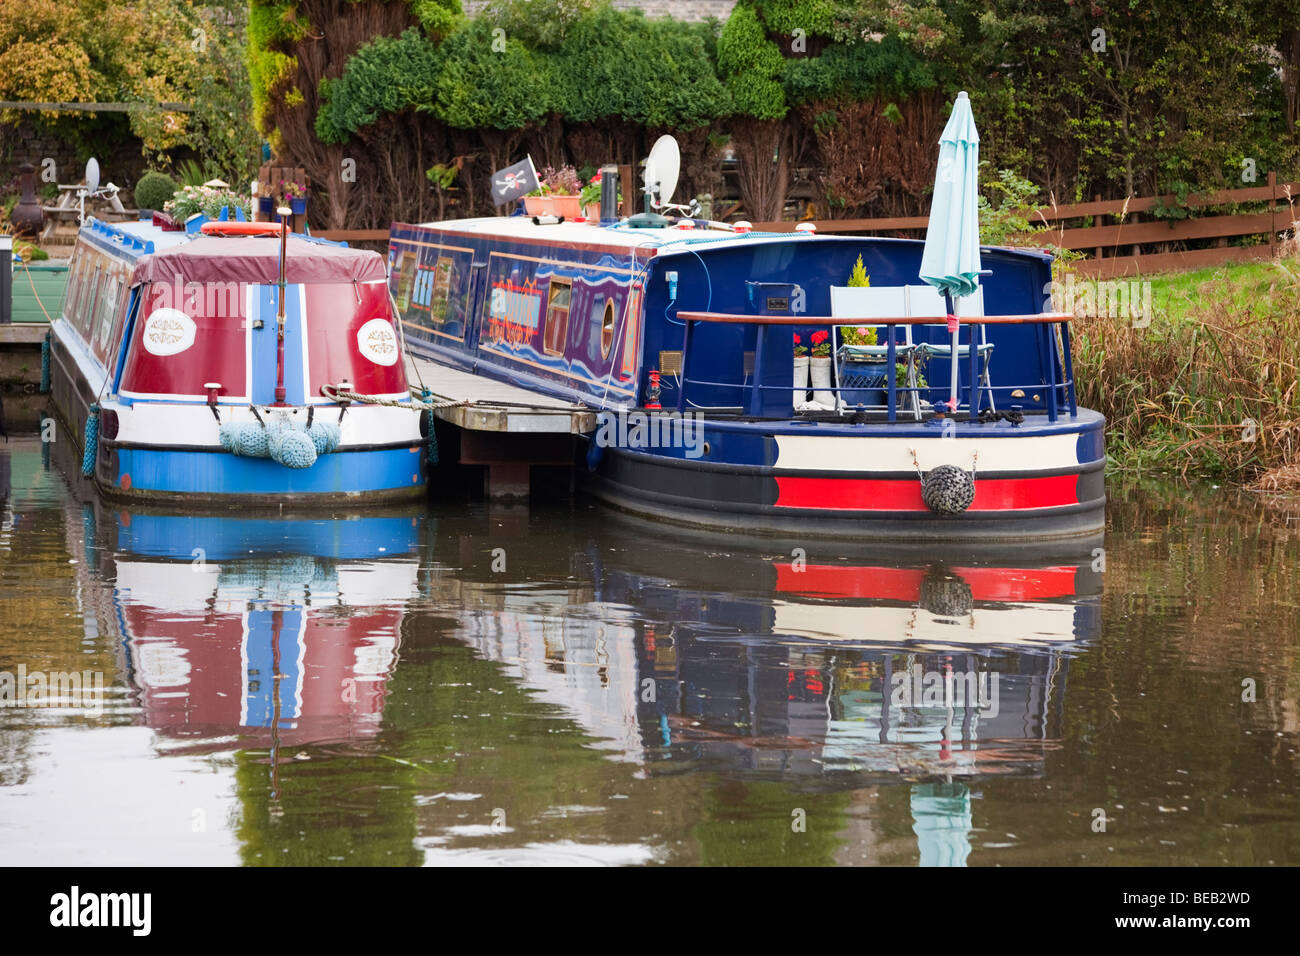 Galgate, Lancashire, England, UK. Two moored narrowboats reflected water in the Lancaster canal basin - Stock Image